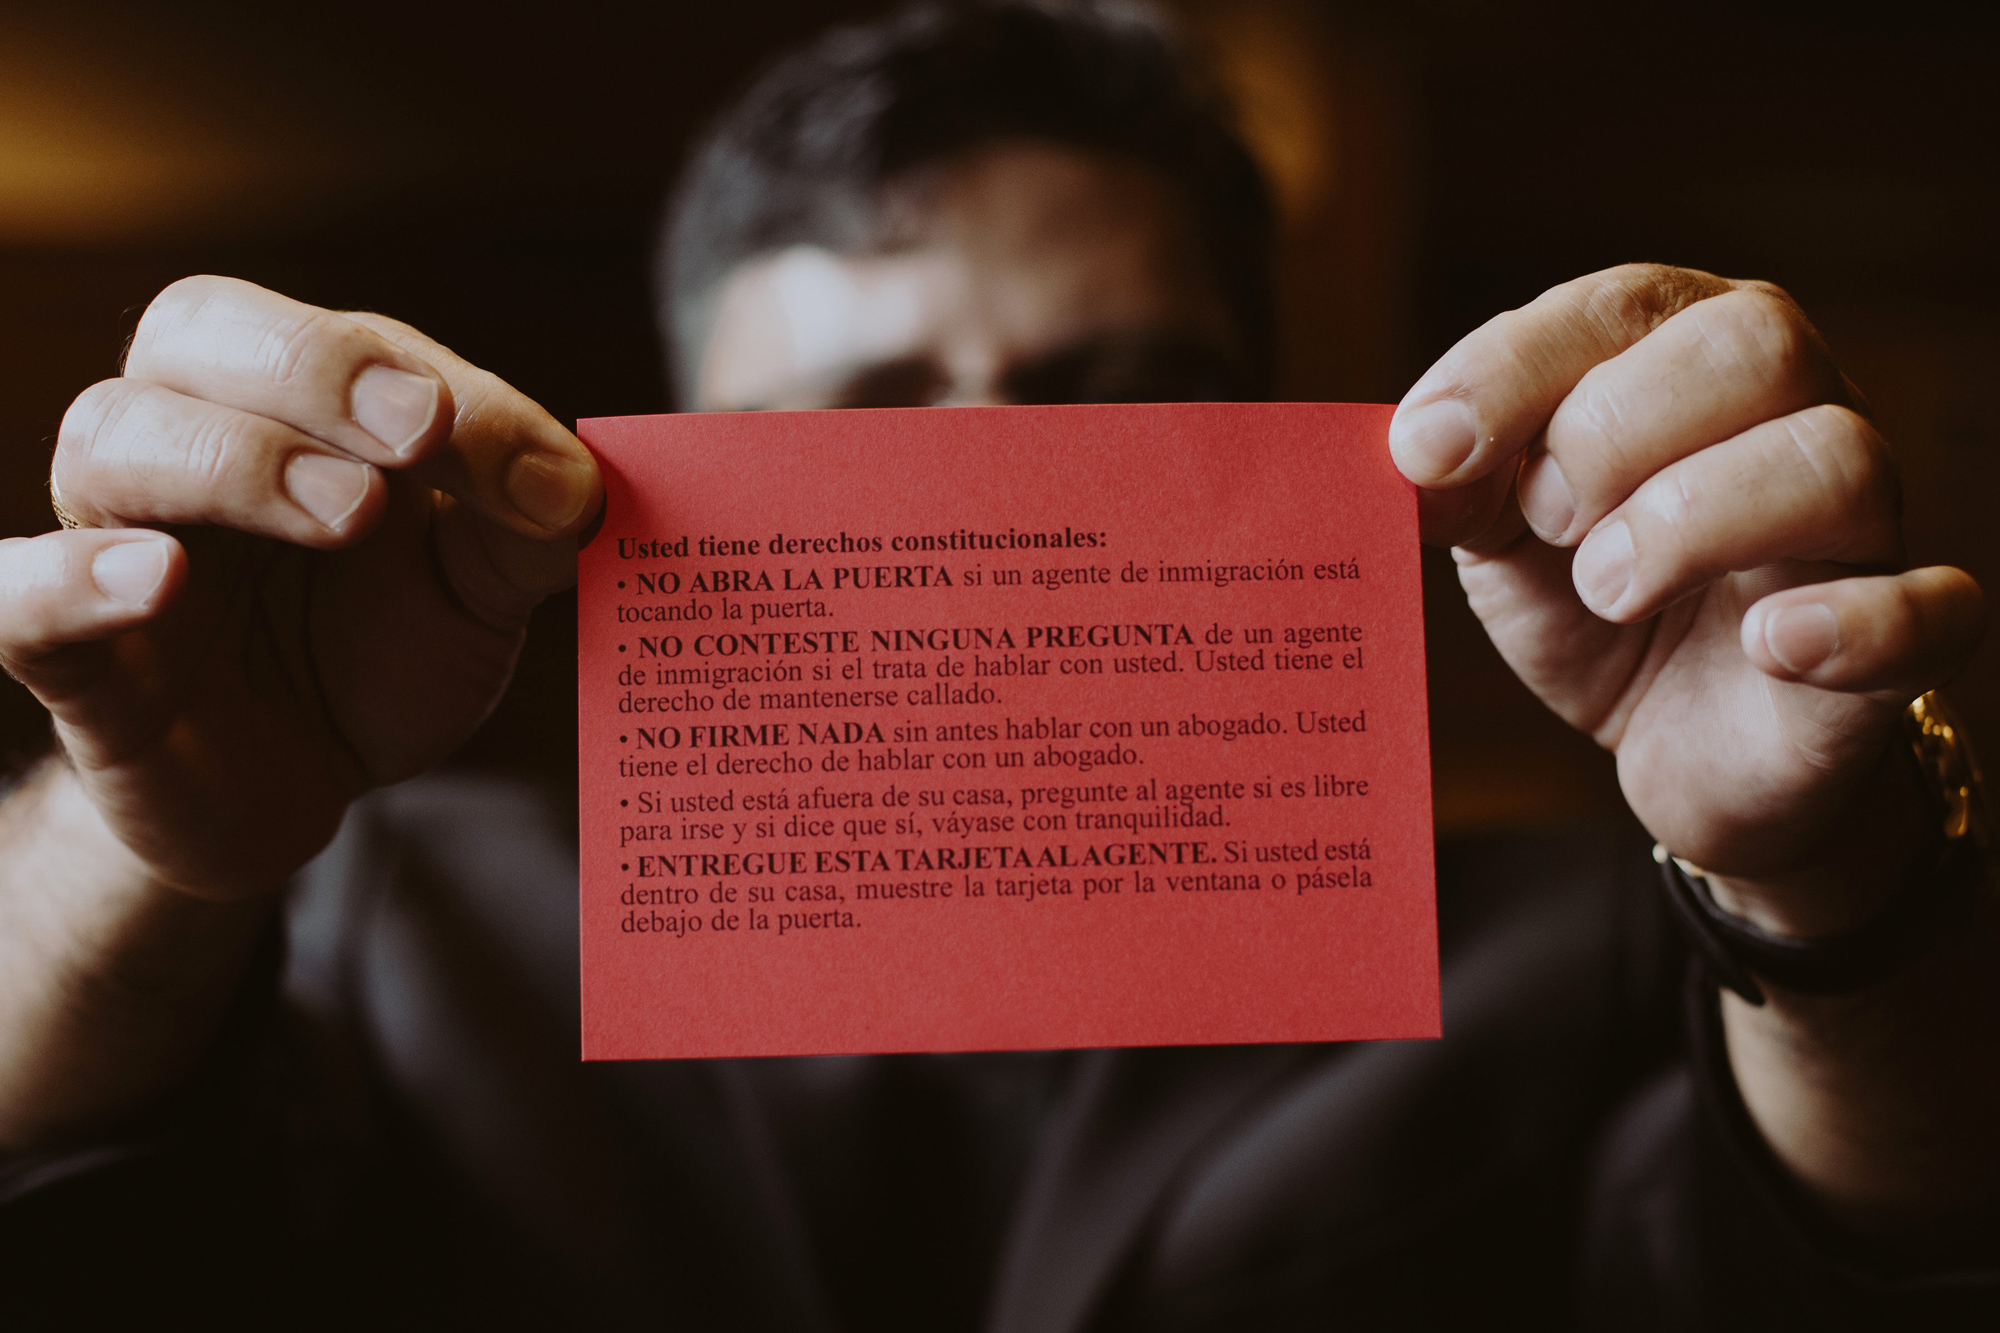 Red cards proclaim people's rights and let law enforcement officers know that people understand that they do not have to submit to illegal searches. They are meant to be posted on front doors and kept inside cars.